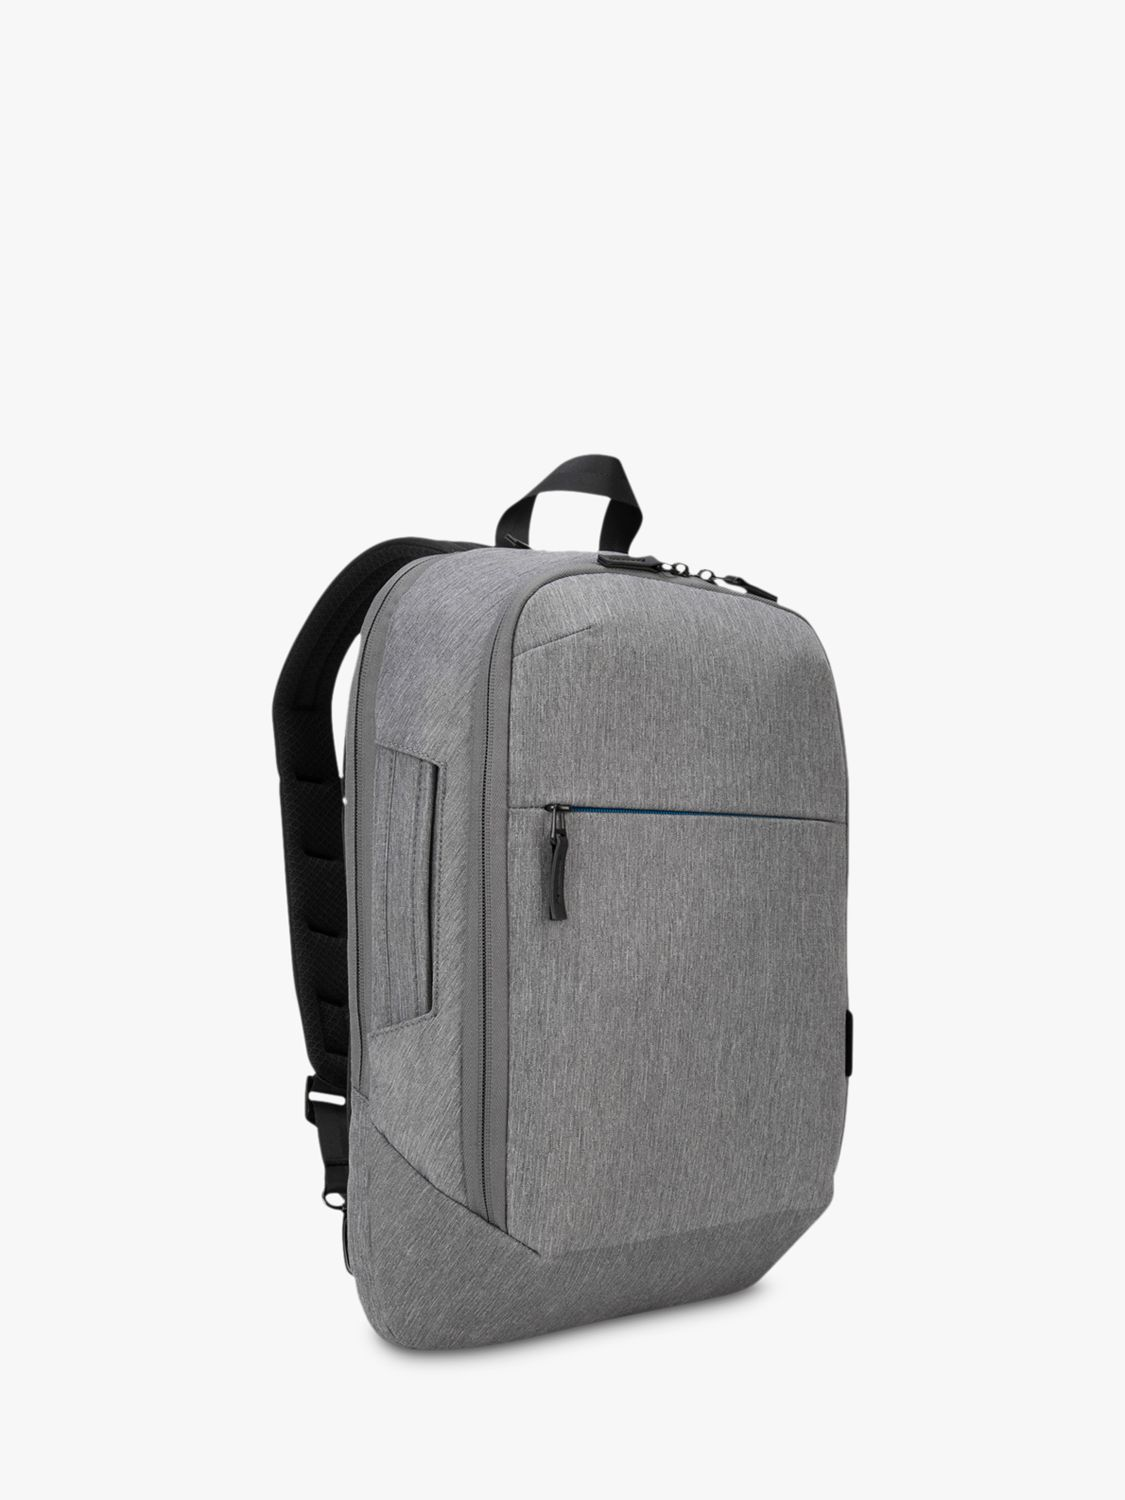 Targus Targus CityLite Convertible Backpack / Briefcase for Laptops up to 15.6, Grey